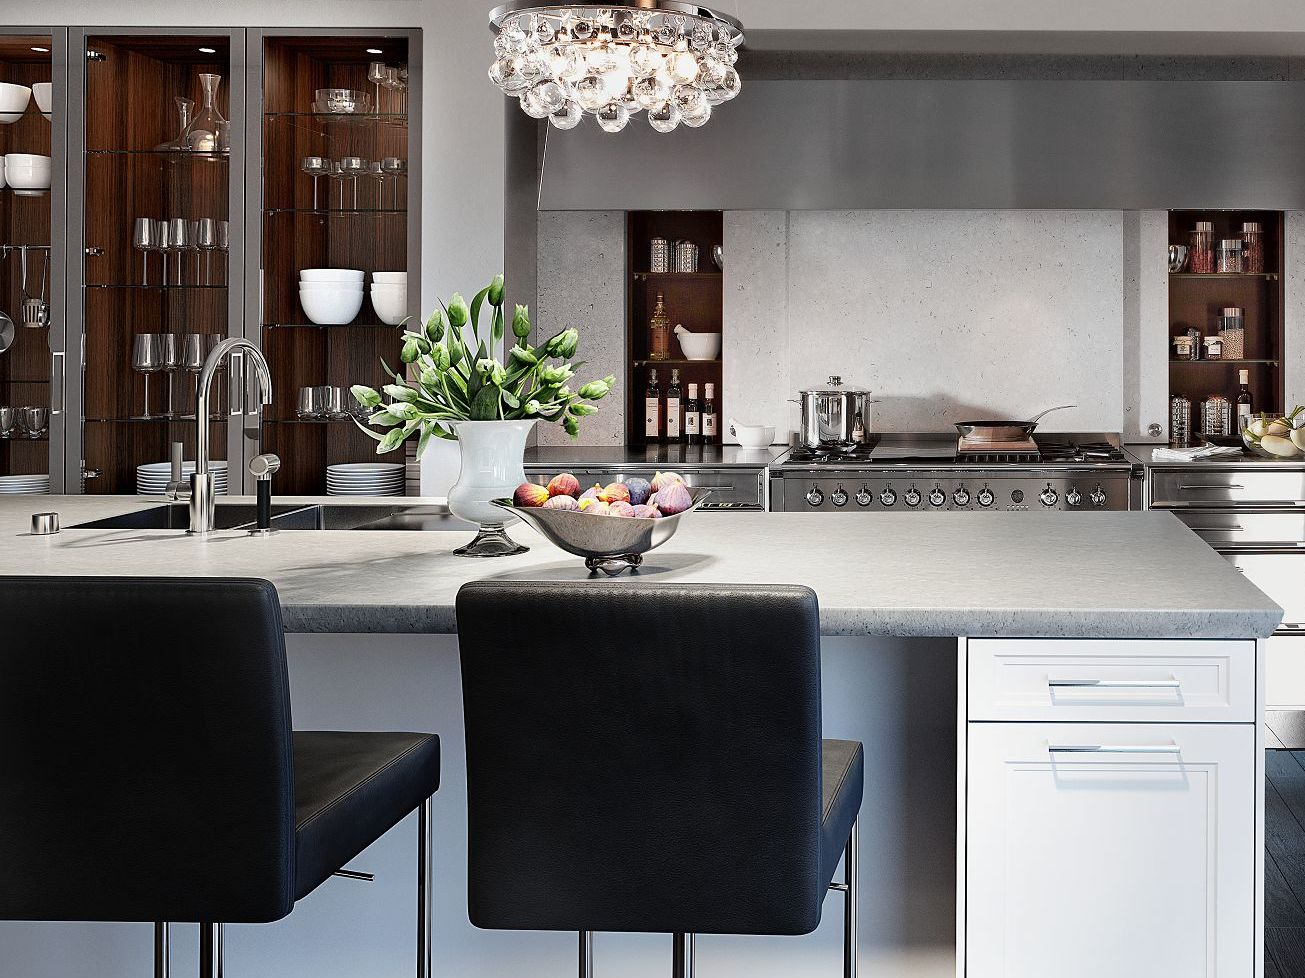 SieMatic Classic BeauxArts S2 in lotus white and nickel with exclusive StoneDesign kitchen countertop